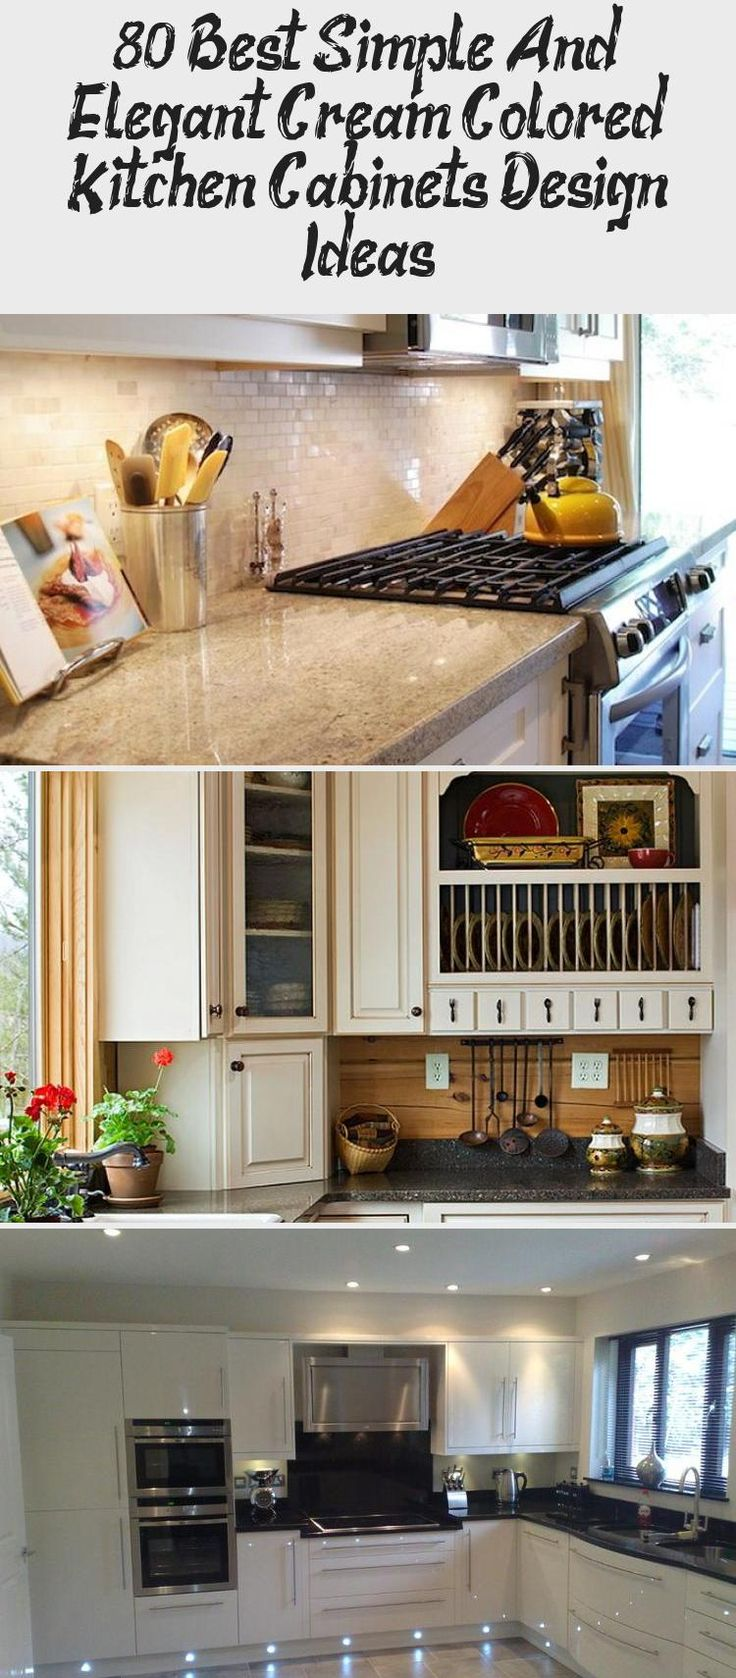 80+ Best Simple And Elegant Cream Colored Kitchen ...